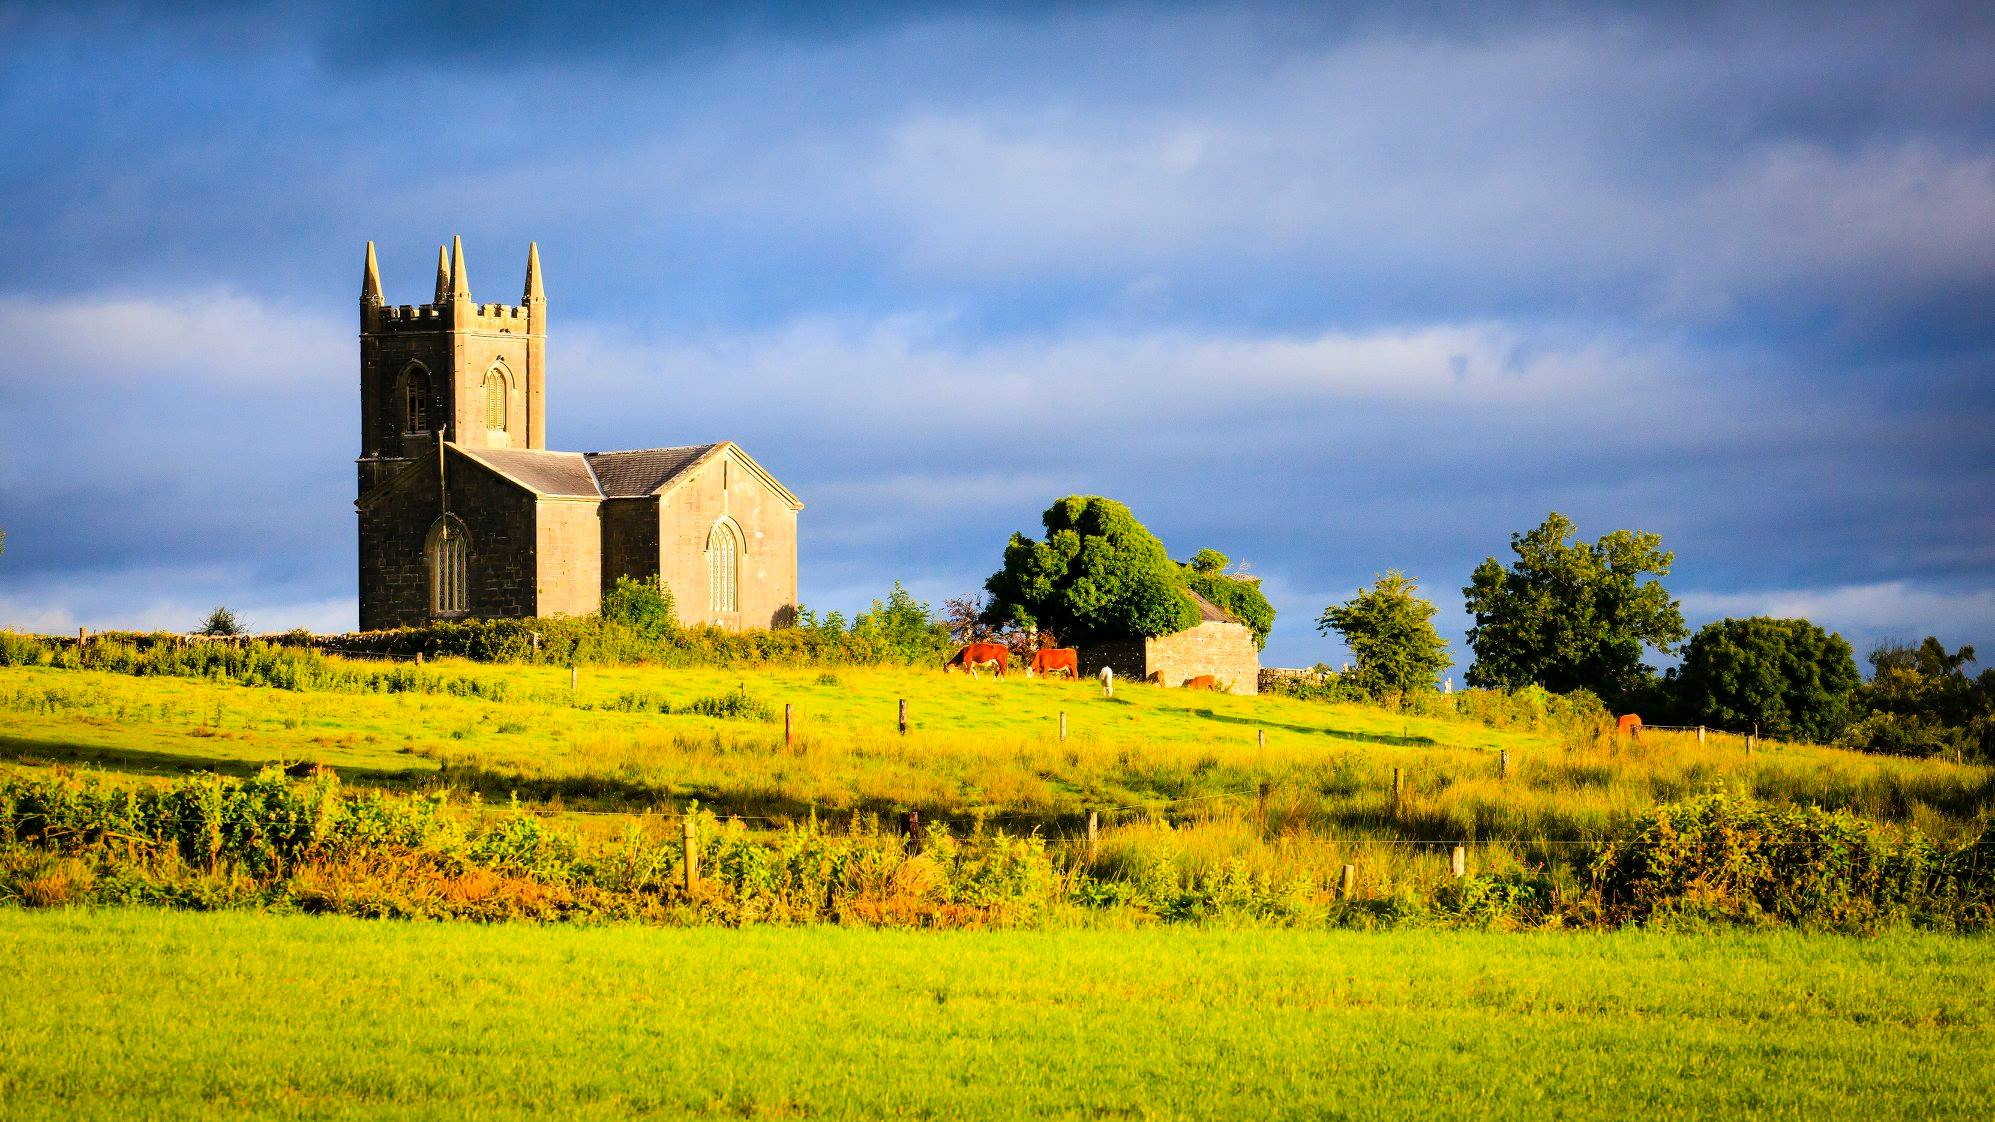 Things to Do in Ballymahon, Ireland - Ballymahon Attractions